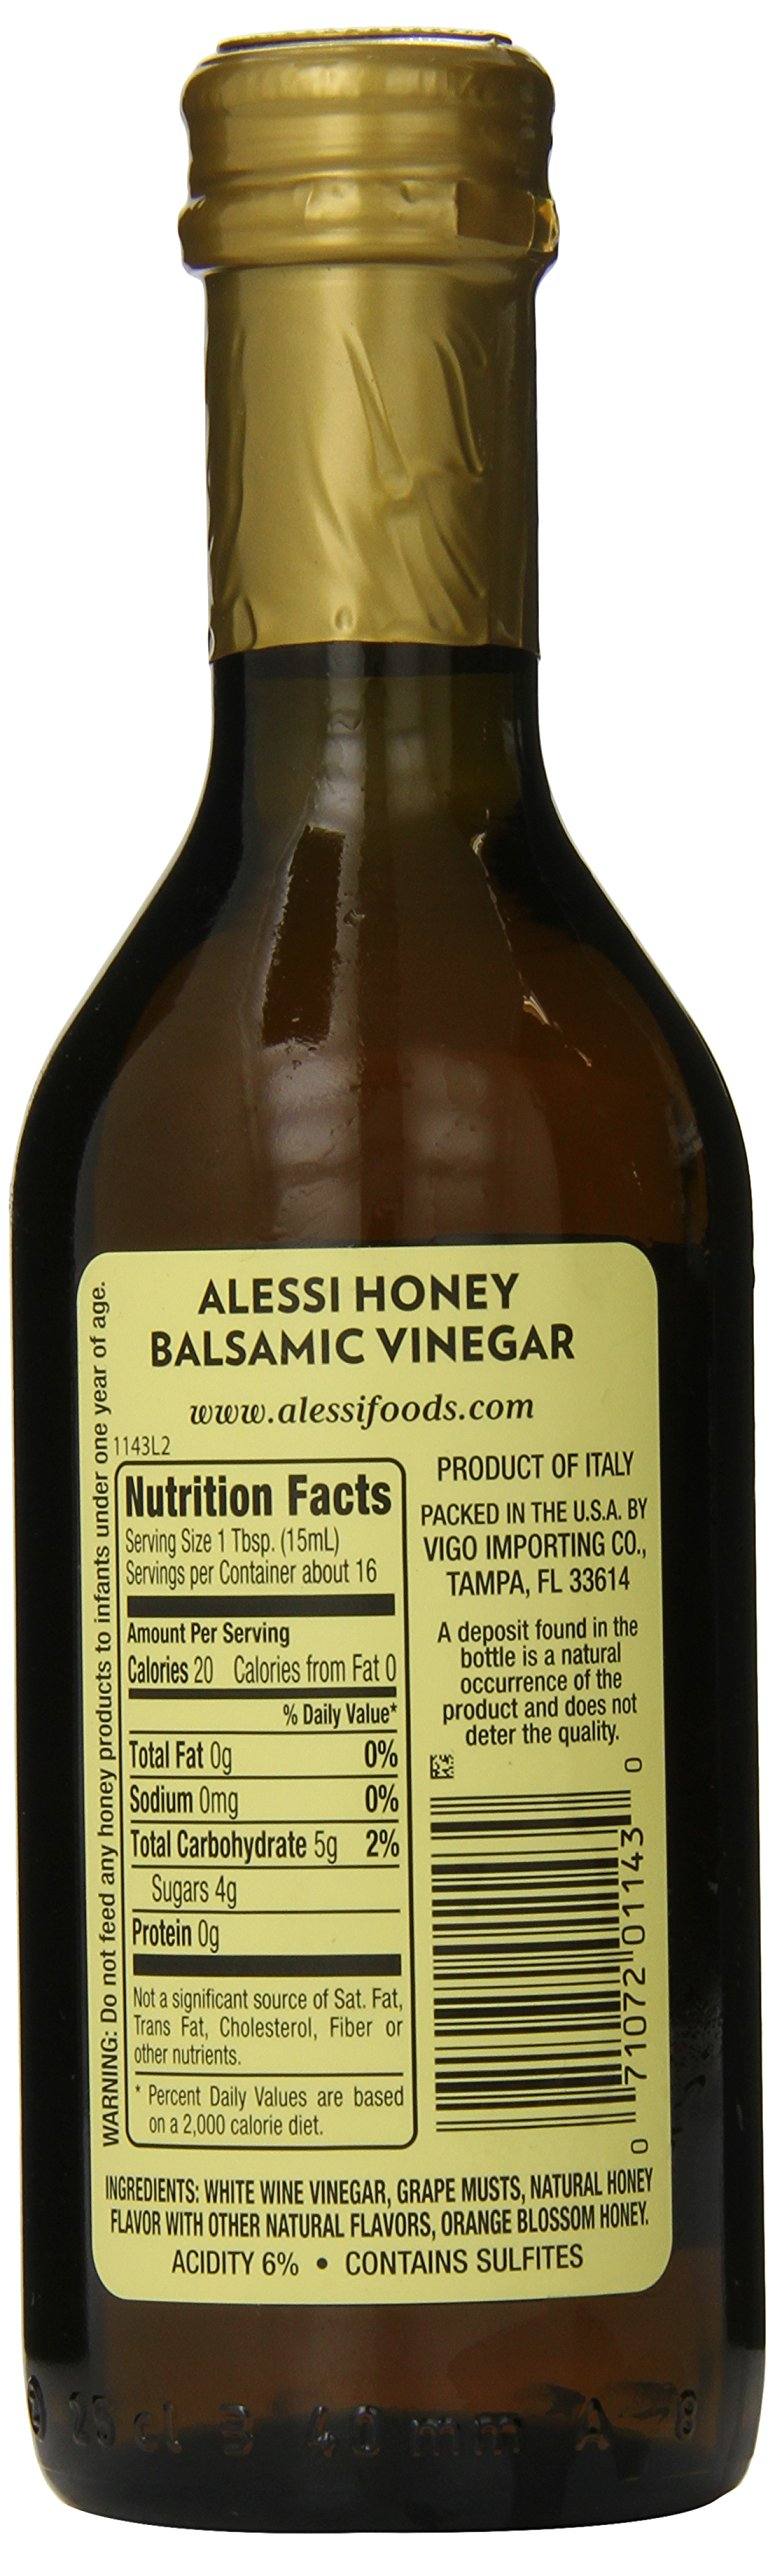 Alessi Honey Balsamic Vinegar, 8.5 Ounce 3 A deposit found in the bottle is a natural occurrence of the product and does not deter the quality. Alessi Orange Blossom Honey Balsamic Vinegar is a ligh